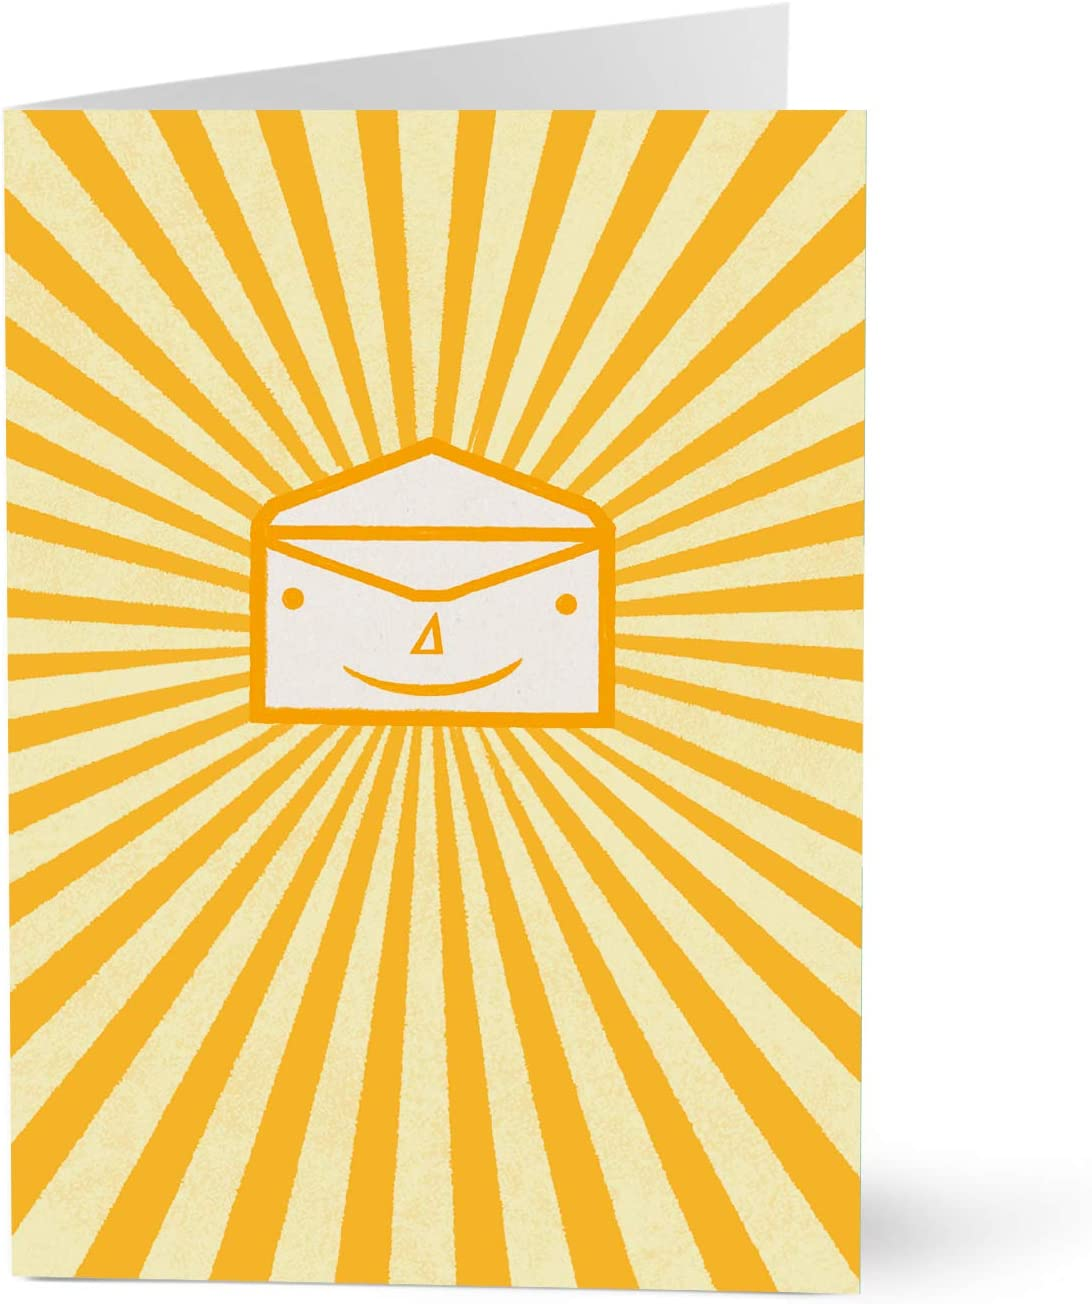 New arrival Hallmark In a popularity Business Encouragement Greeting Card for and Customers